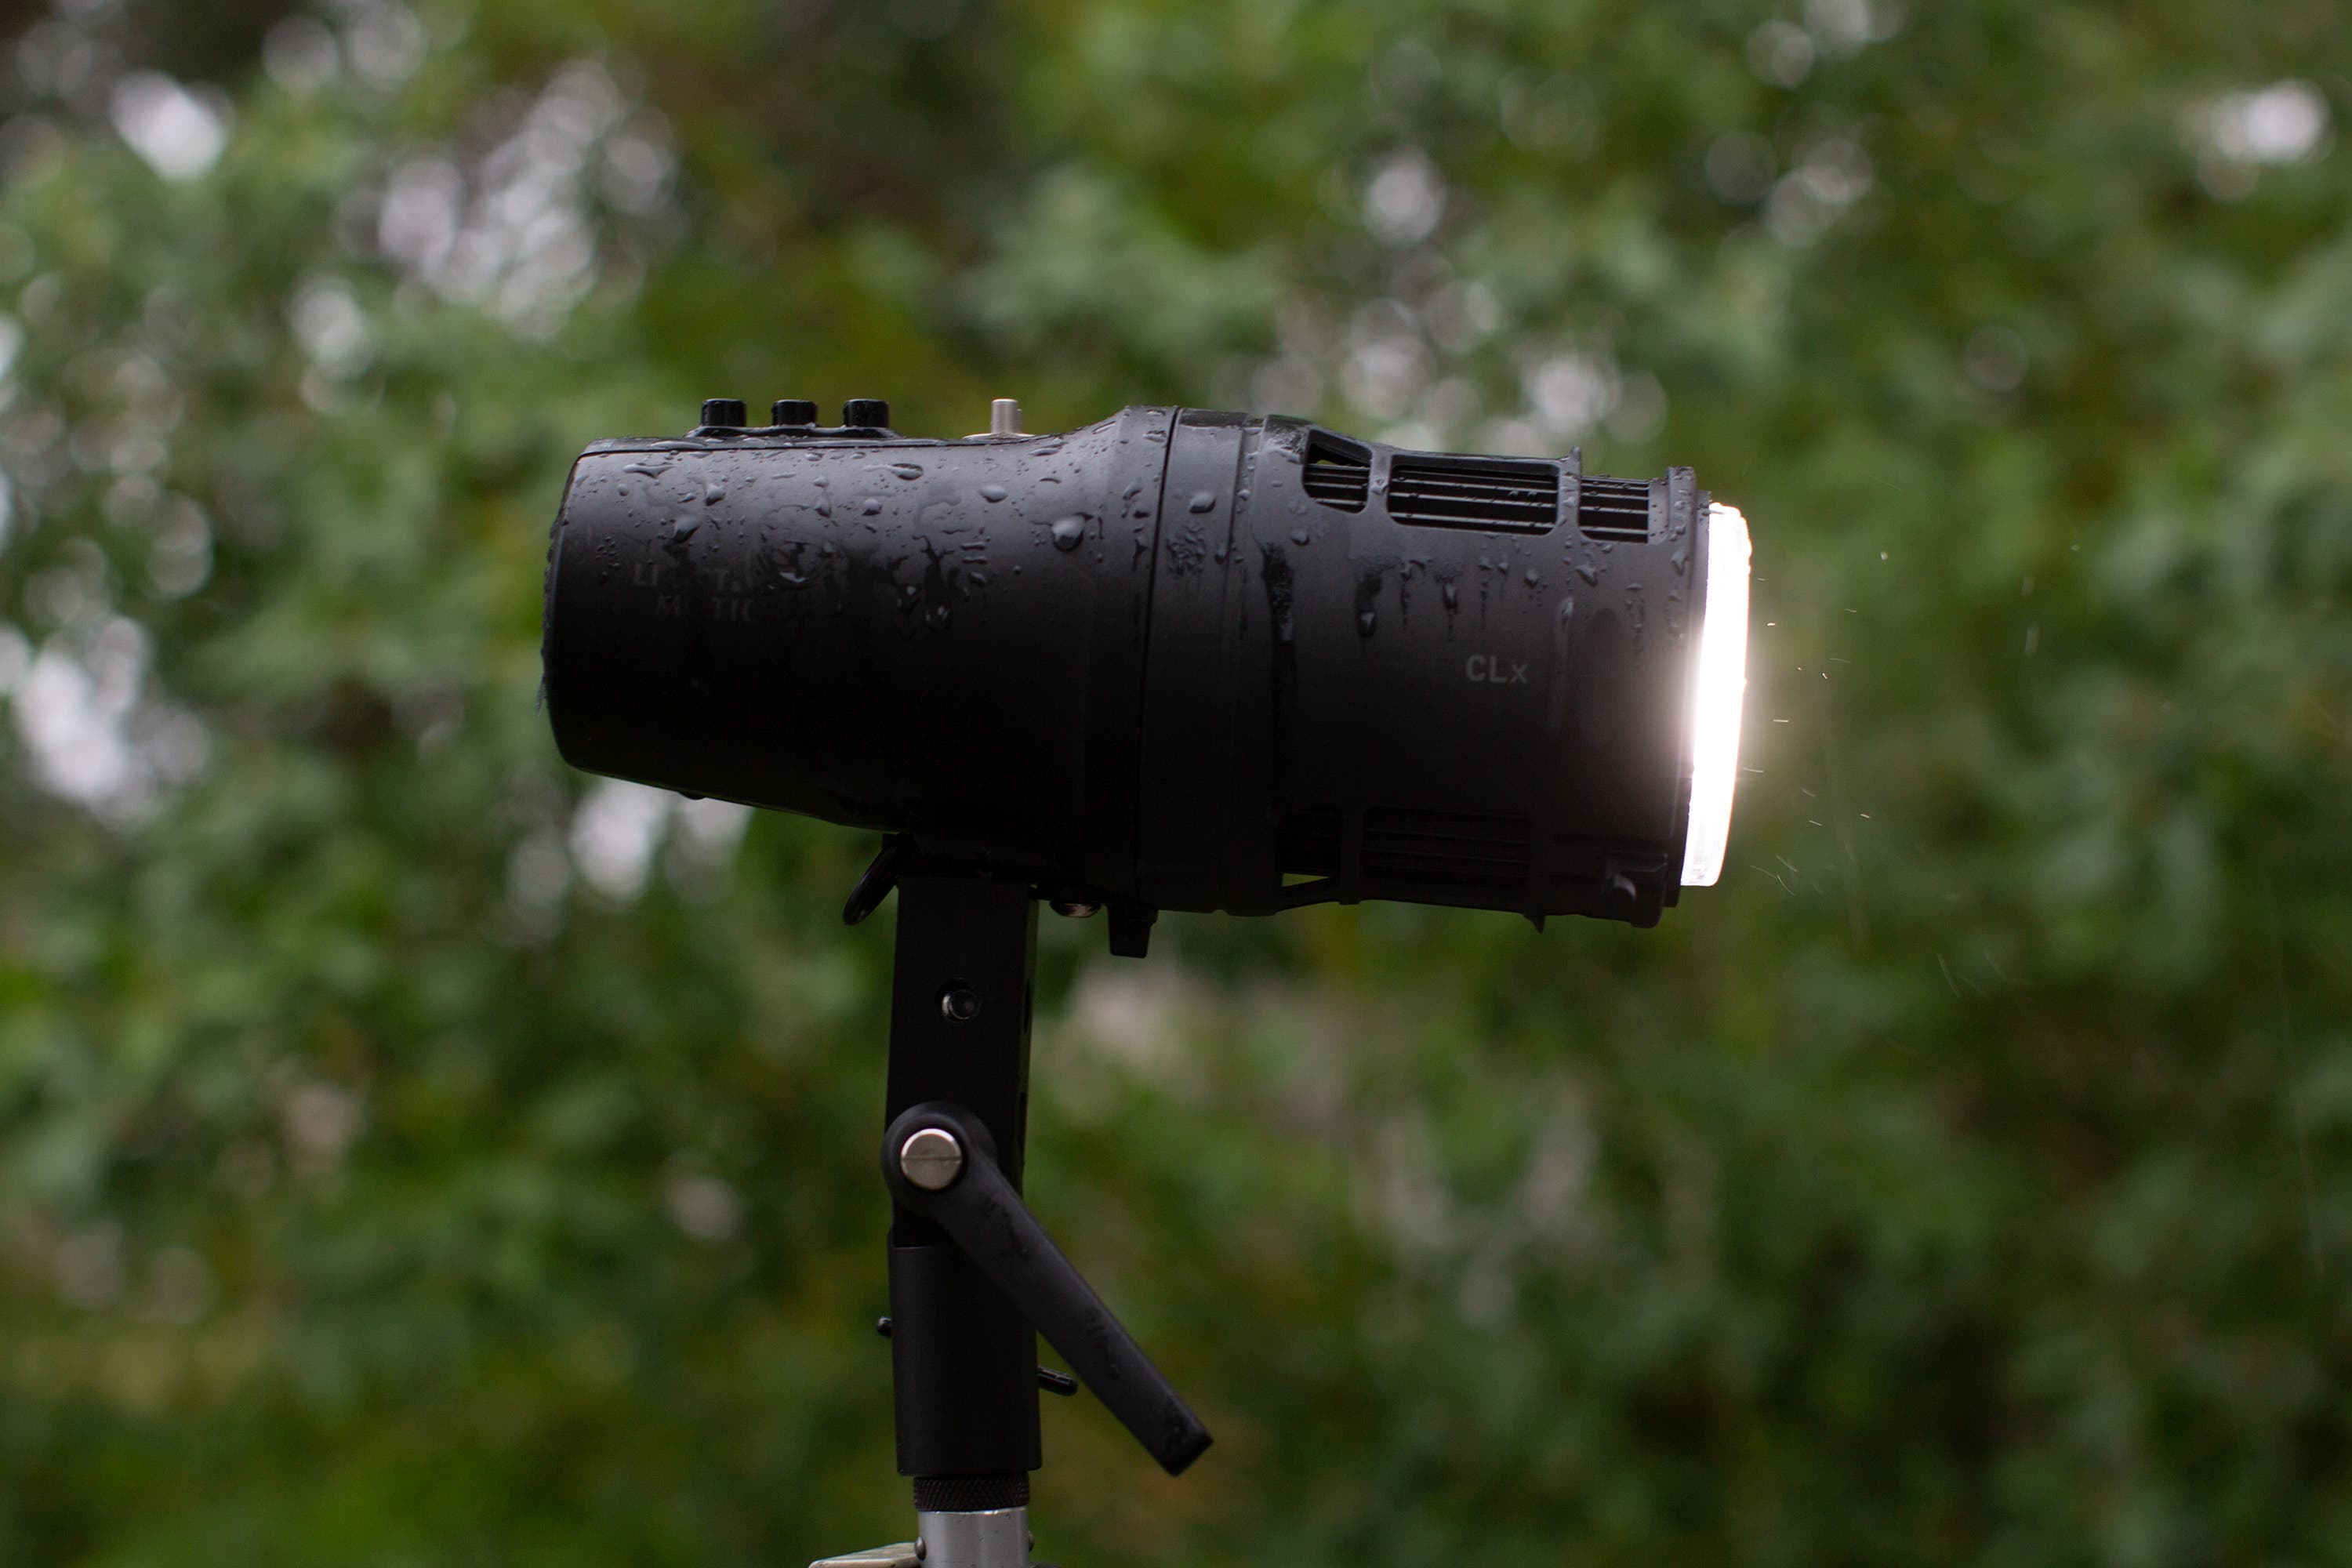 A Powerful LED Option! Stella Pro Clx10 Review